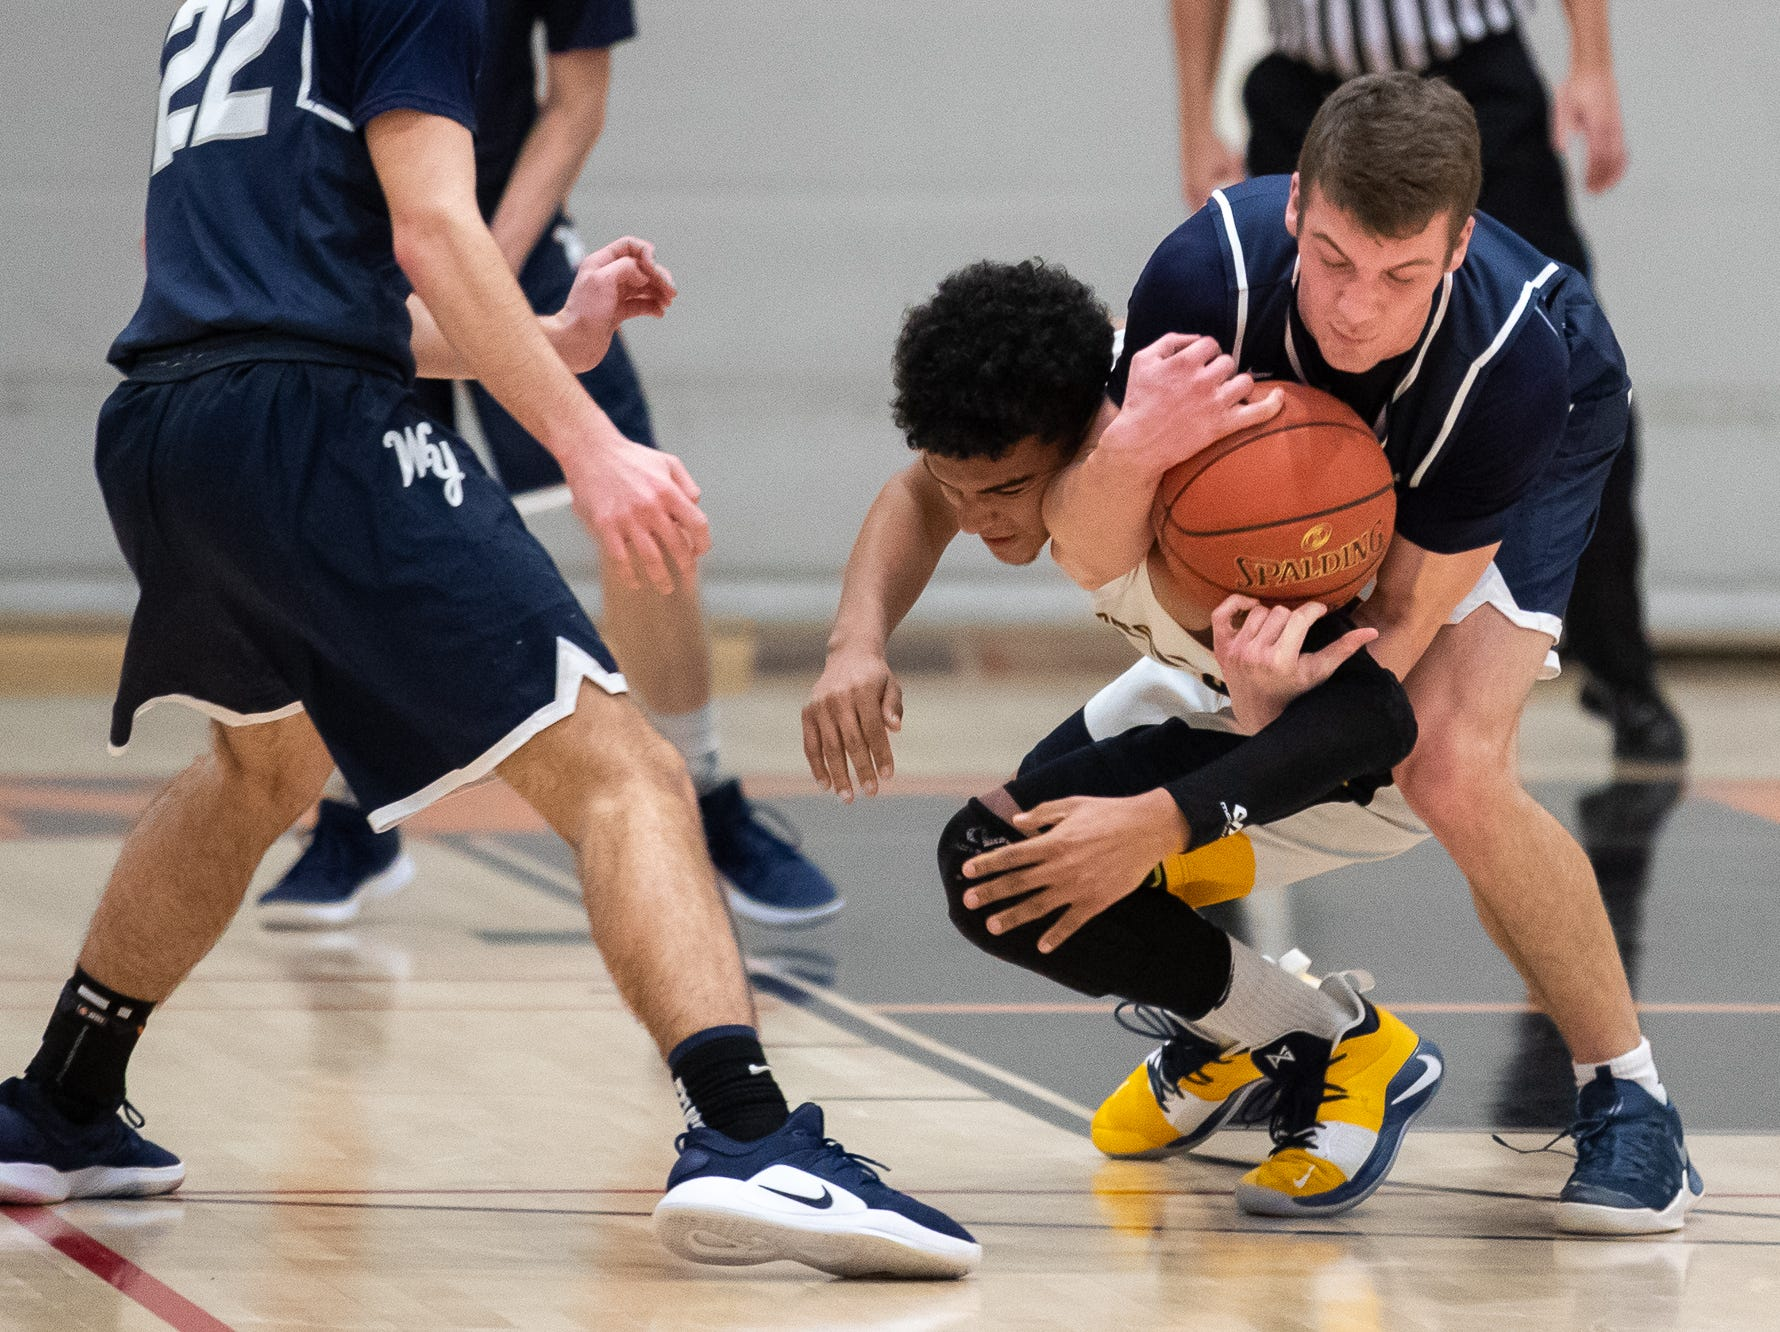 West York's Andrew LaManna (5) wrestles with Littlestown's Jayden Weishaar (32) for the ball during the second half of the YAIAA boys' basketball quarterfinals between Littlestown and West York, Saturday, Feb. 9, 2019, at Central York High School. The Littlestown Bolts defeated the West York Bulldogs 73-63.